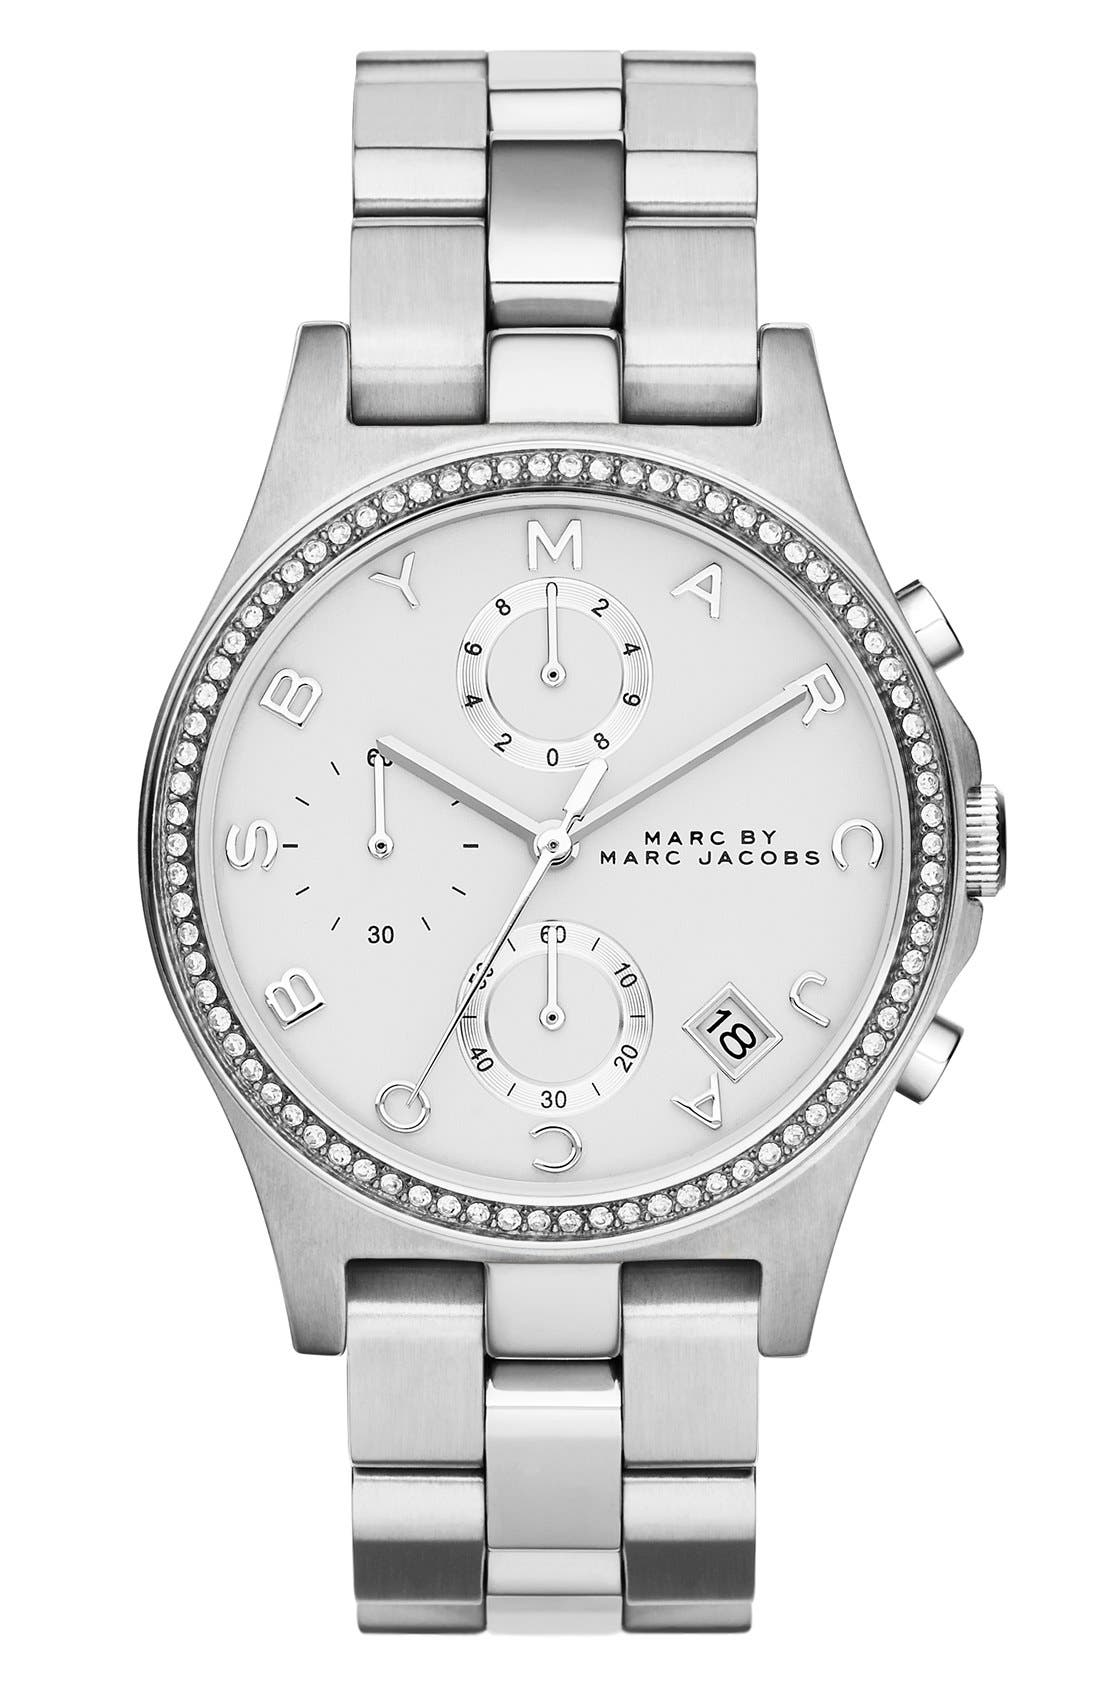 Main Image - MARC JACOBS 'Henry' Chronograph Bracelet Watch, 37mm (Nordstrom Exclusive)